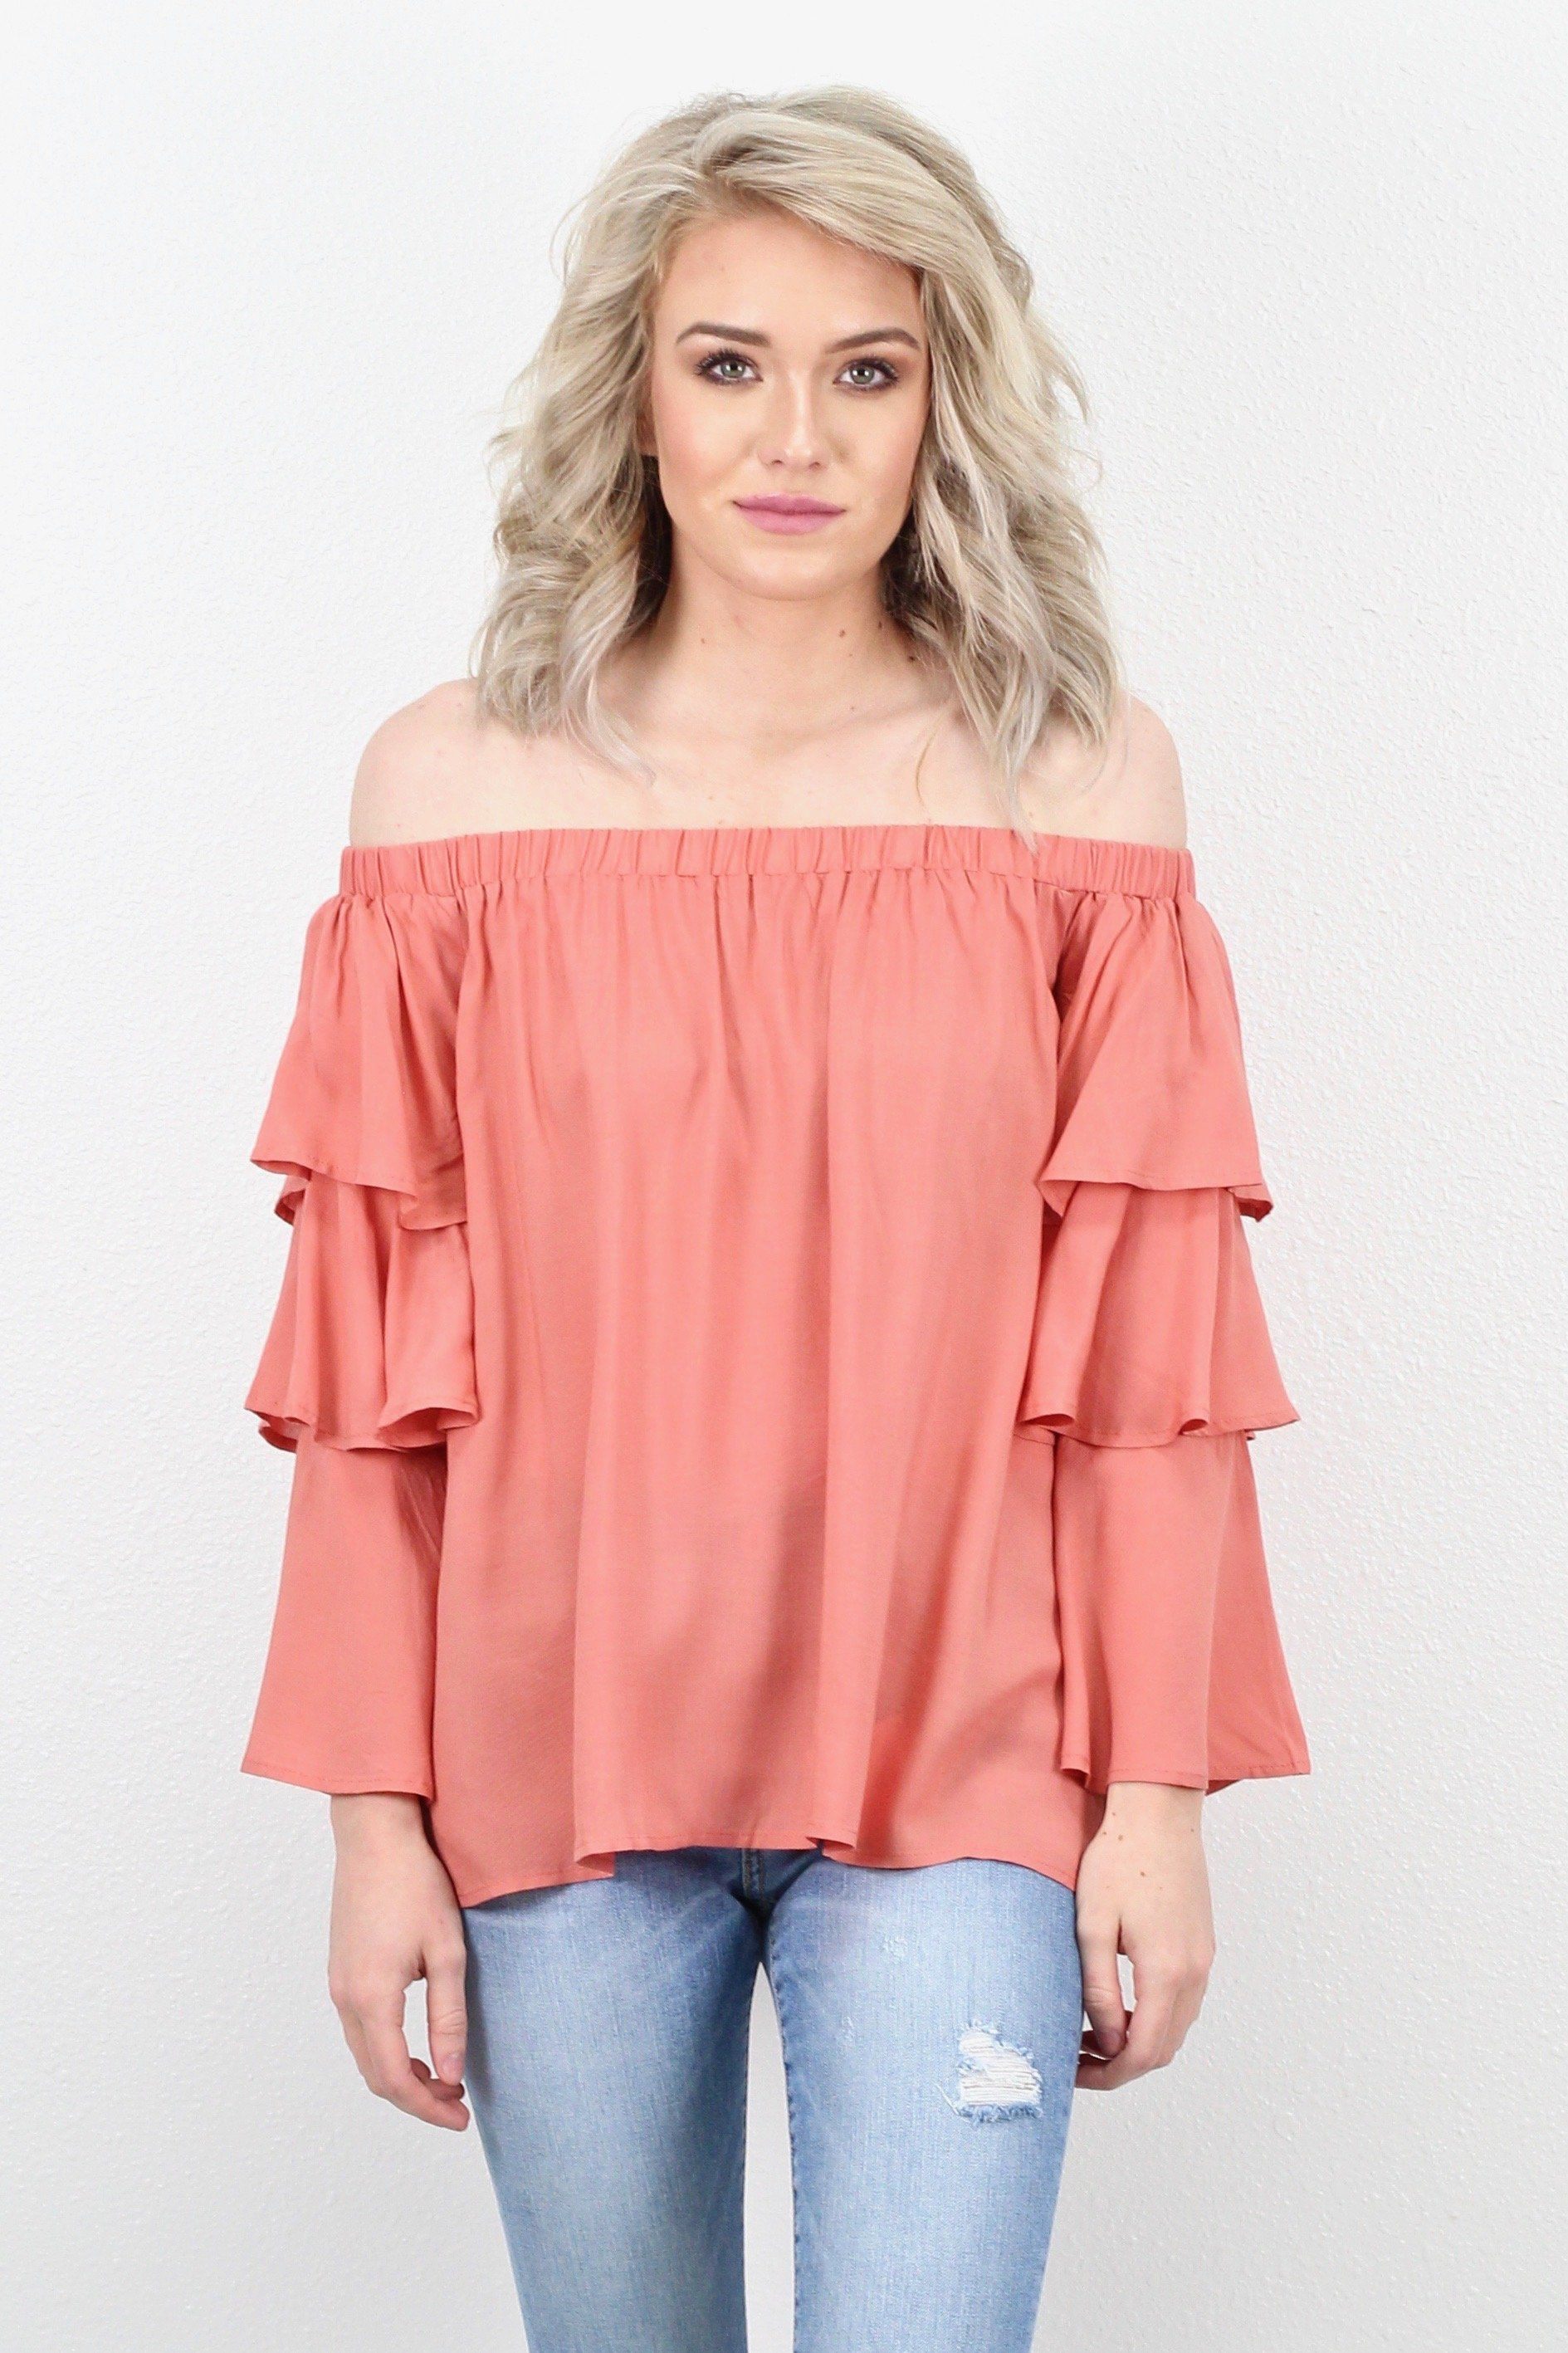 c7dcbc35873 Off shoulder blouse with long sleeves that feature a layered ruffle look.  So cute worn with shorts or denim